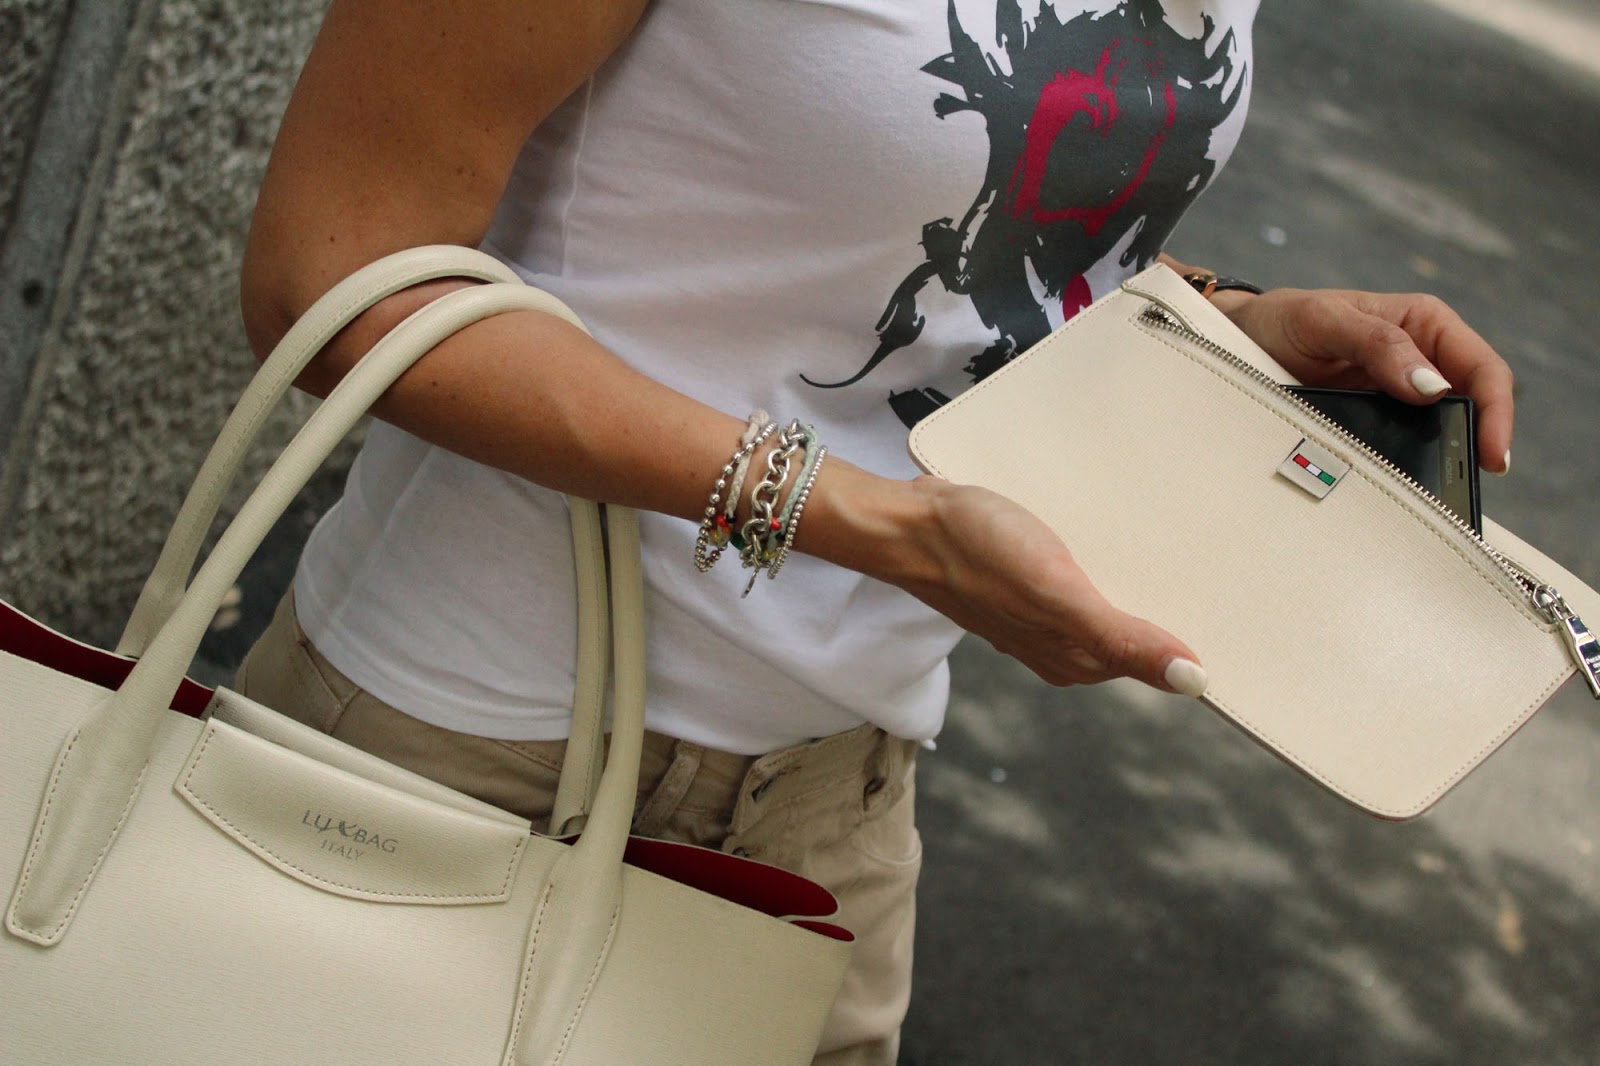 Eniwhere Fashion - Tshirt Wronghole and LuxBag